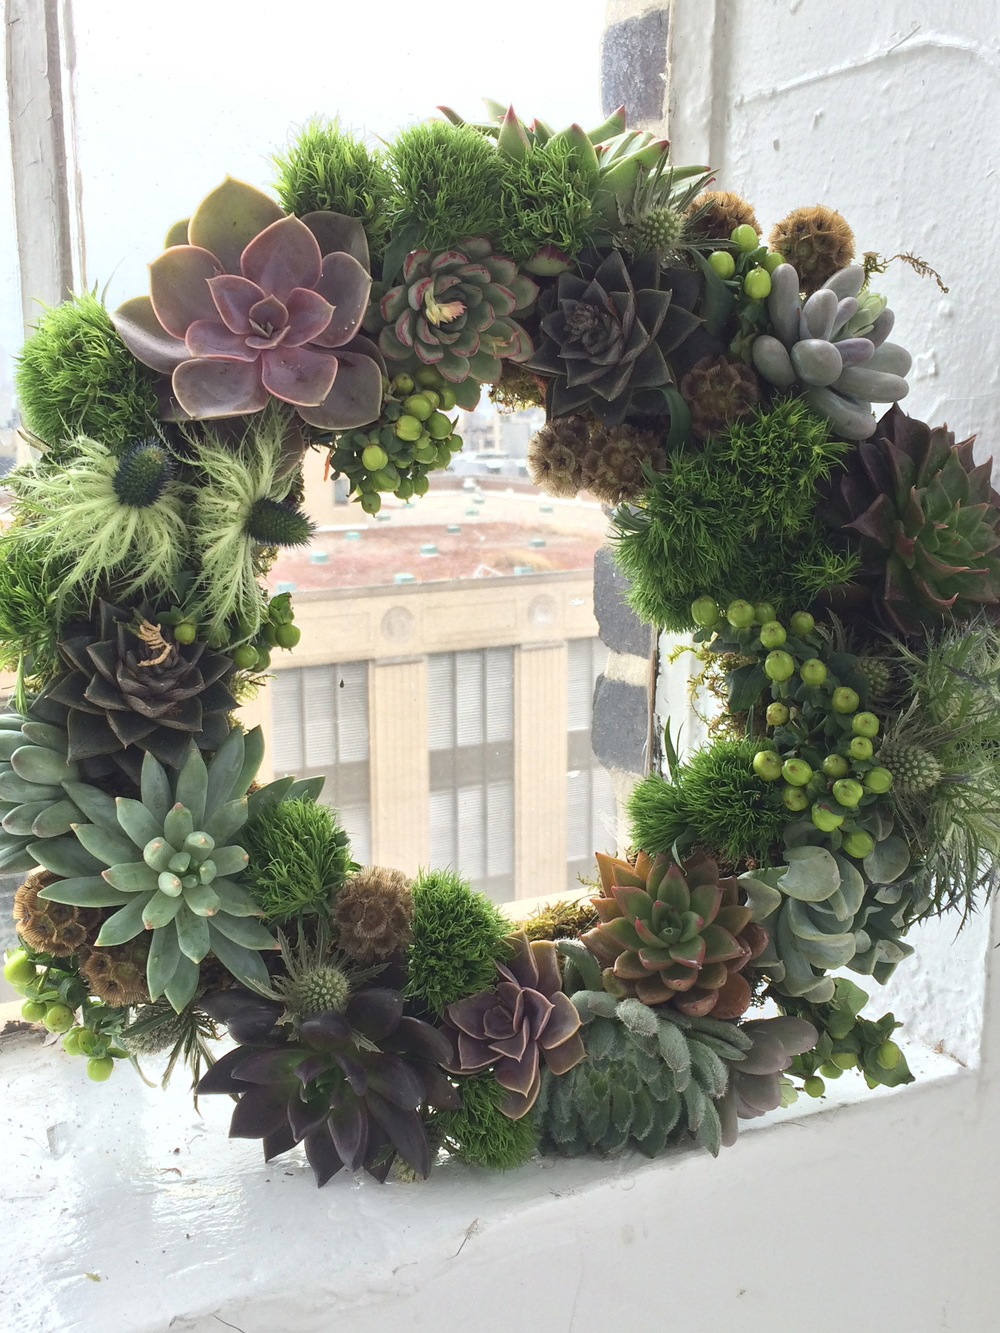 Living Wreath class with Matthew Robbins of Matthew Robbins Designs. He is a contributor to Martha Stewart Weddings and creates events all over the world. It was an honor to learn from him!